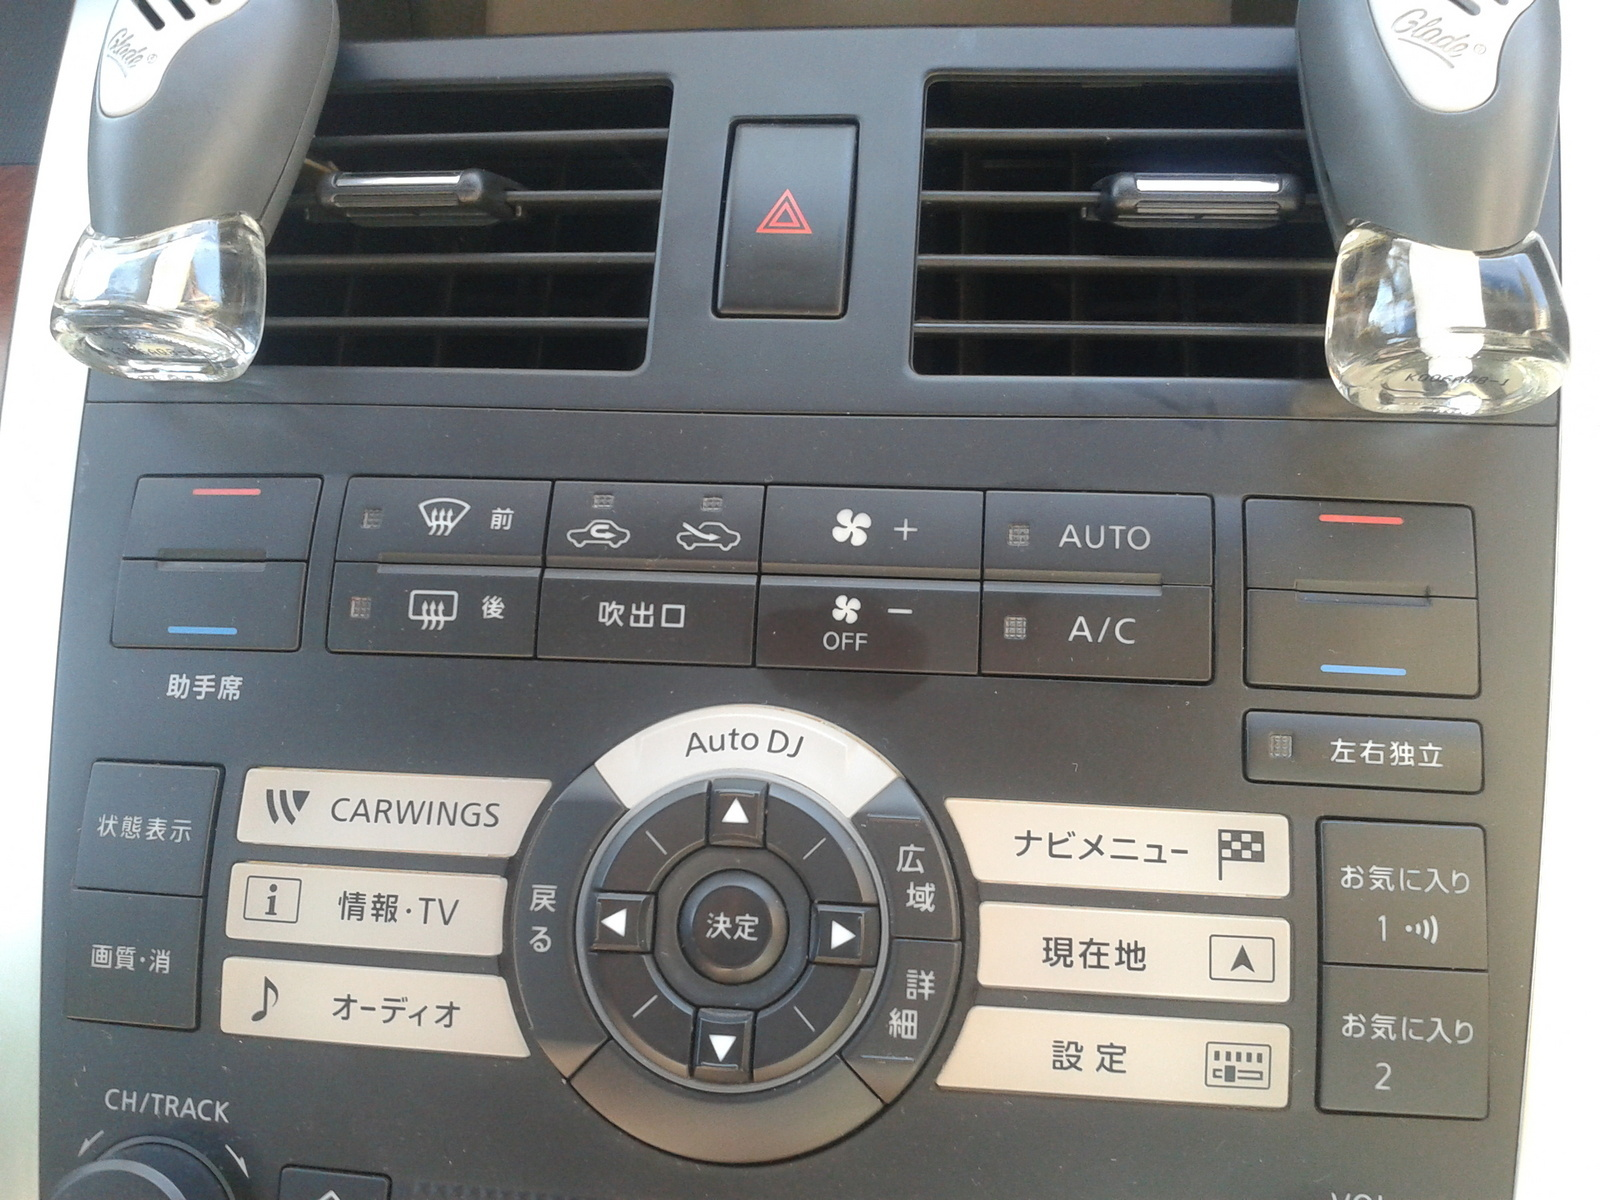 I bought a nissan teana 230jk 2004 model but i can t understand the symbols on stereo please help me with an english manual for stereo operation